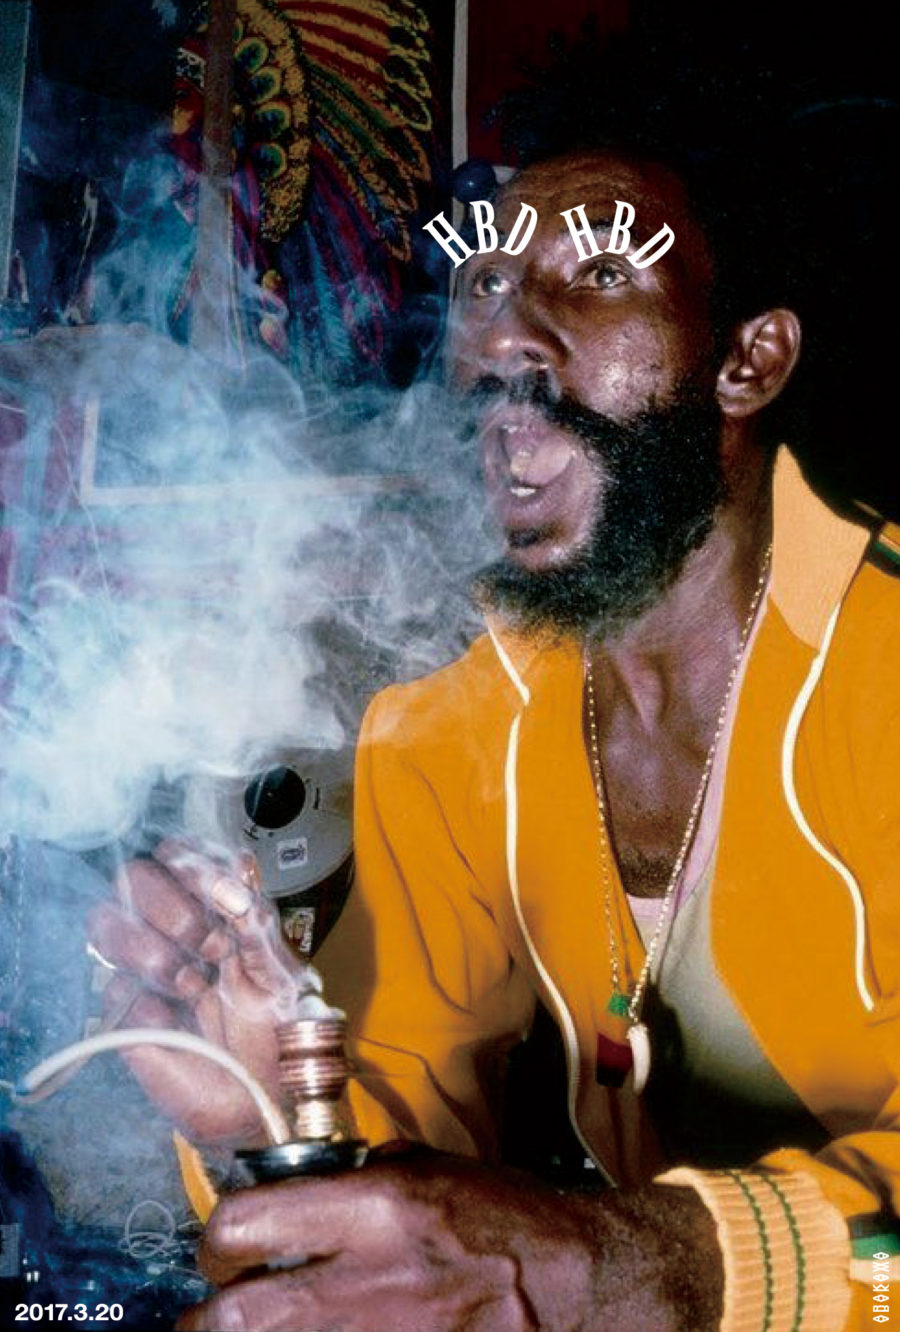 HBD LEE PERRY